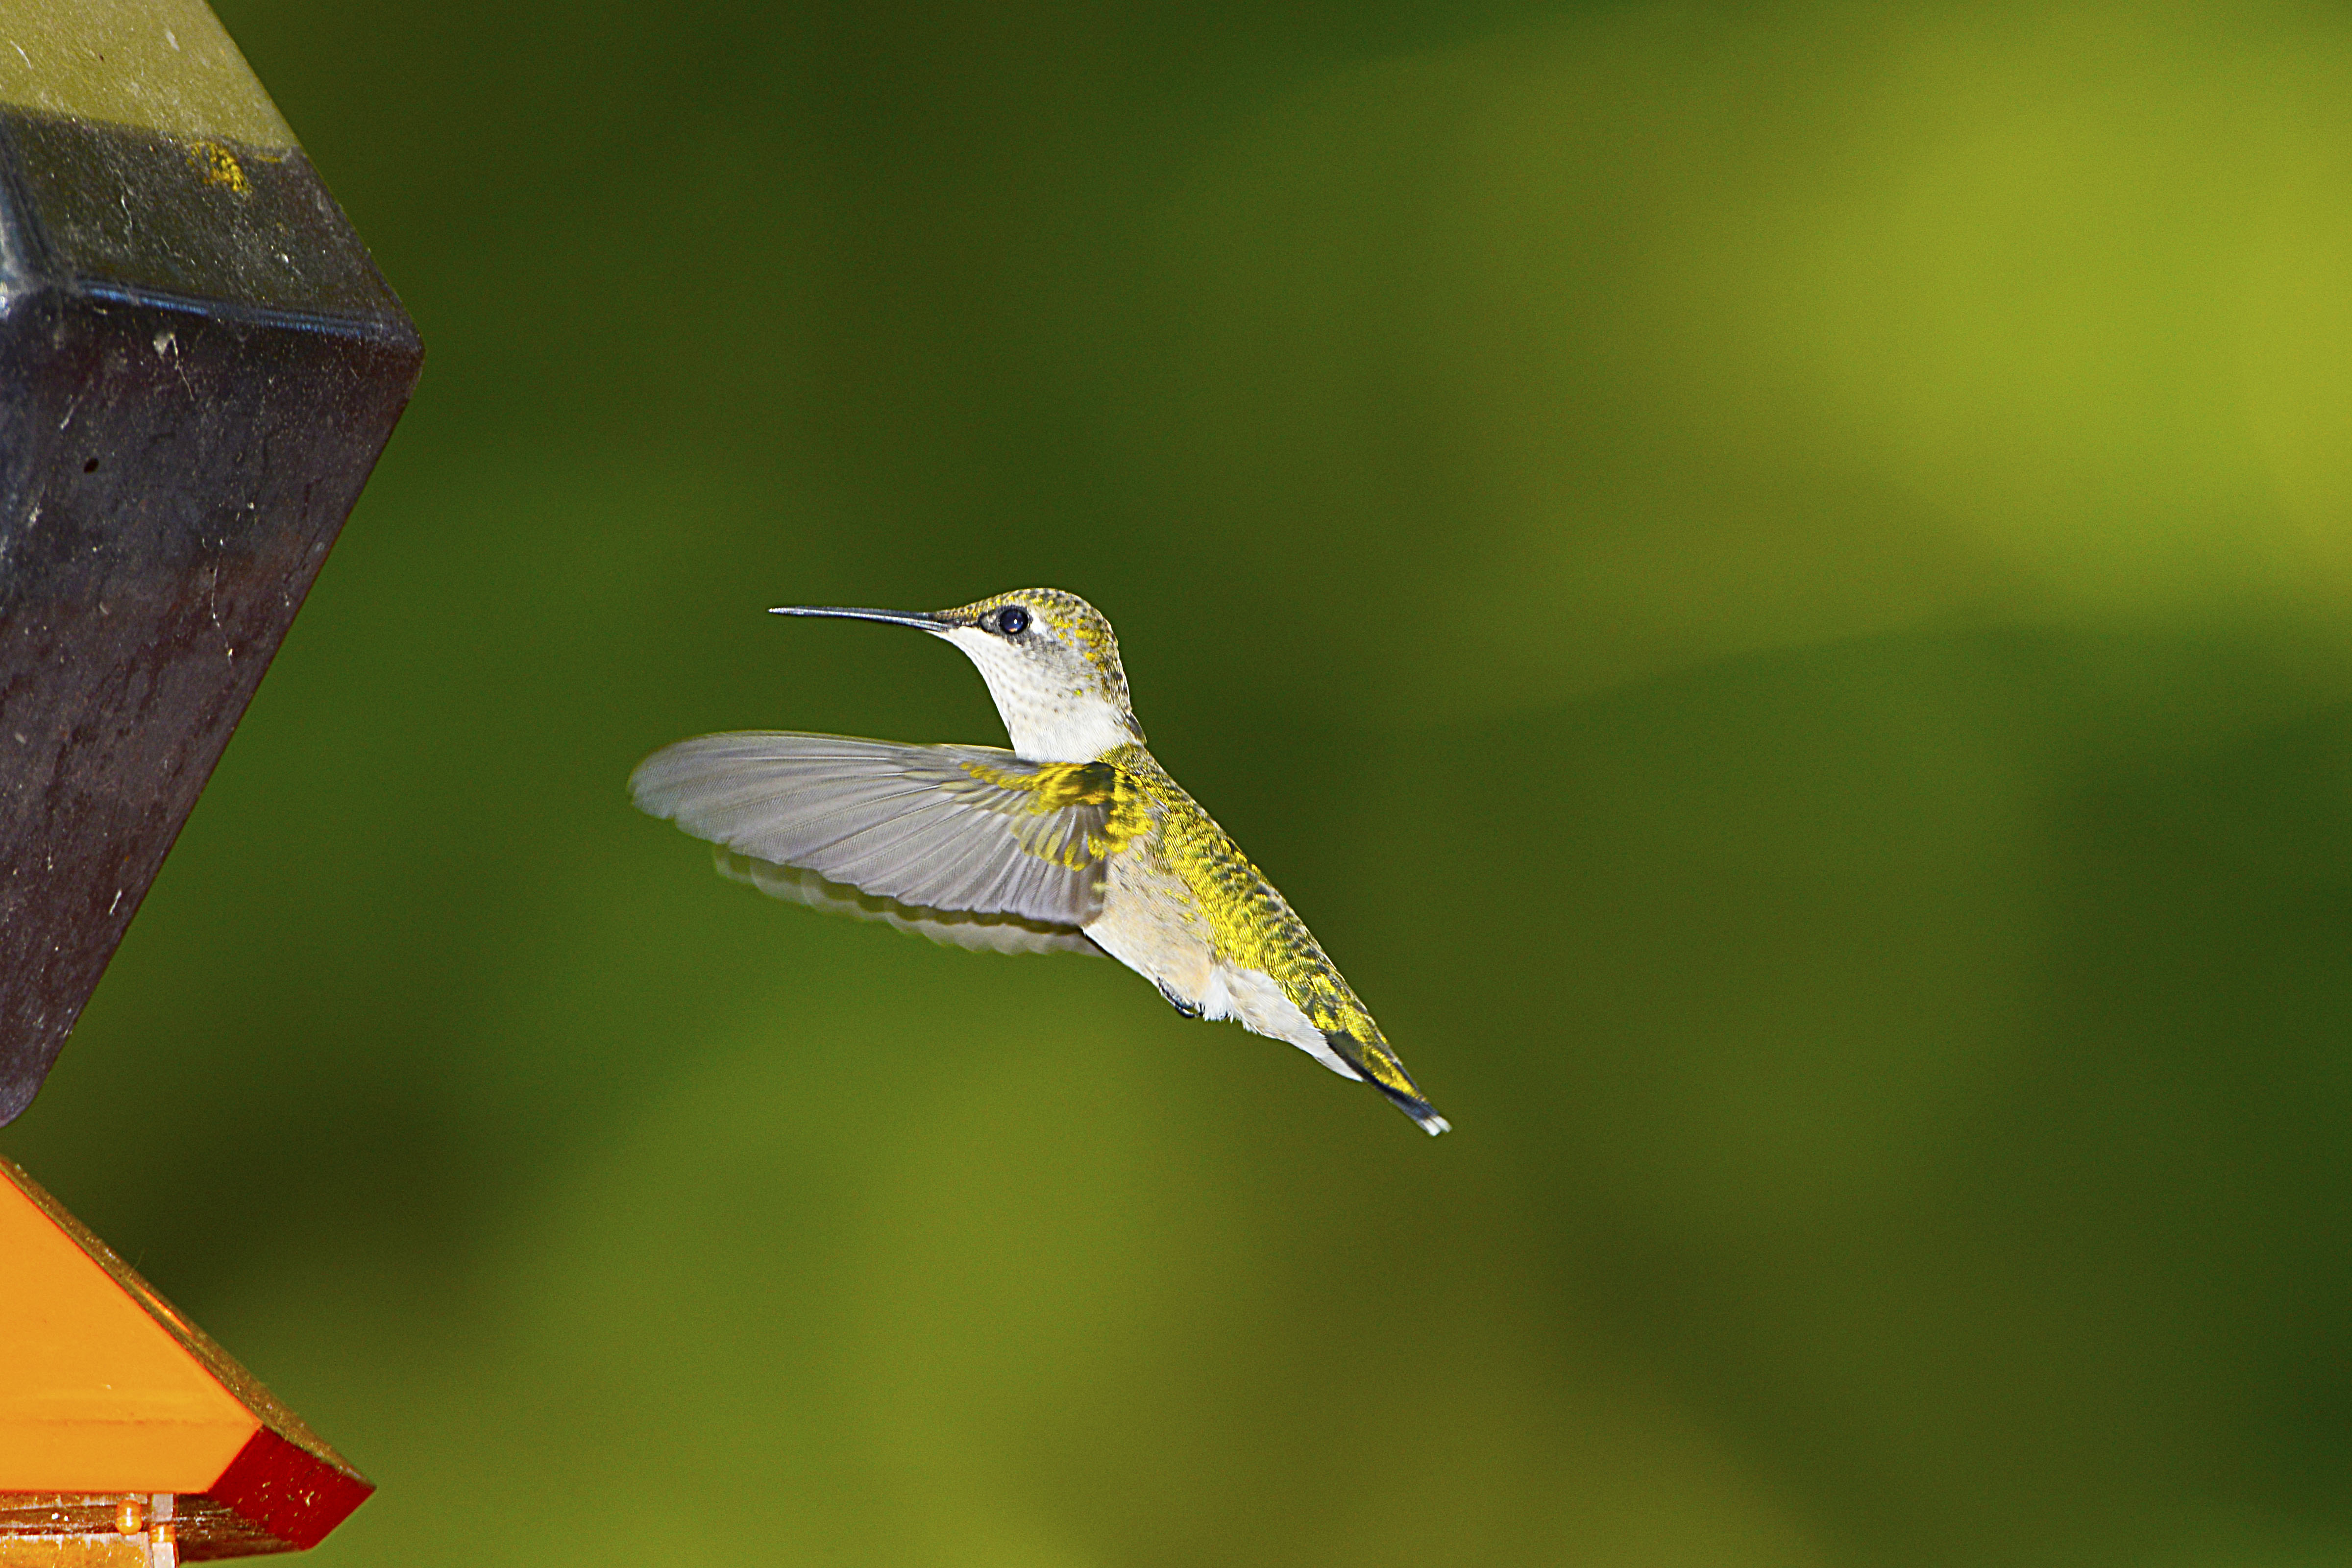 A Ruby-throated Hummingbird